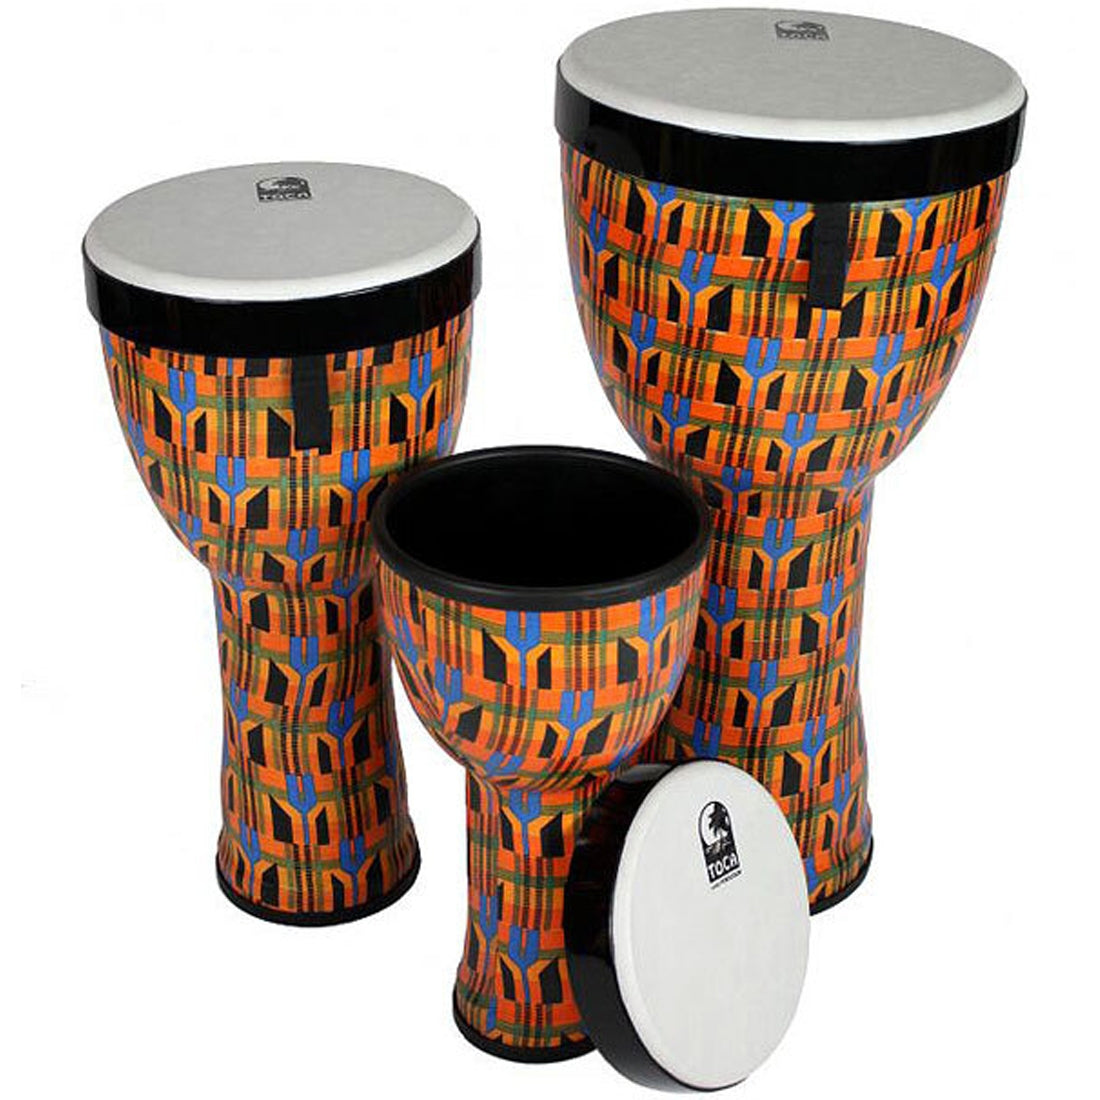 Toca Freestyle 2 Series Nesting Djembe 3-Pieces (8, 10, 12inch) Kente Cloth - TF2ND3PCK